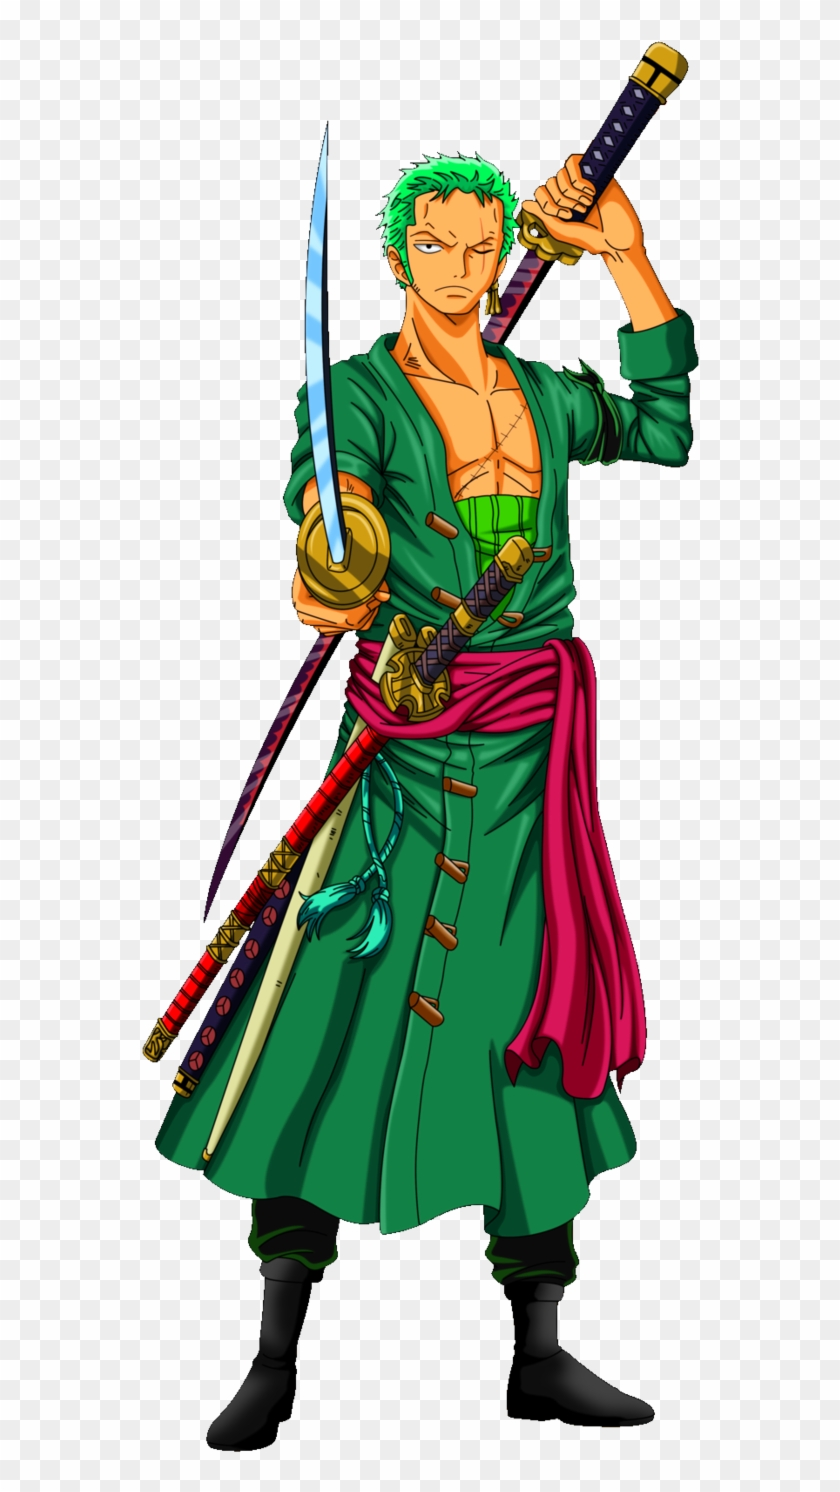 Roronoa Zoro By Alexiscabo1 Hd Png Download 558x1412 1966050 Pngfind